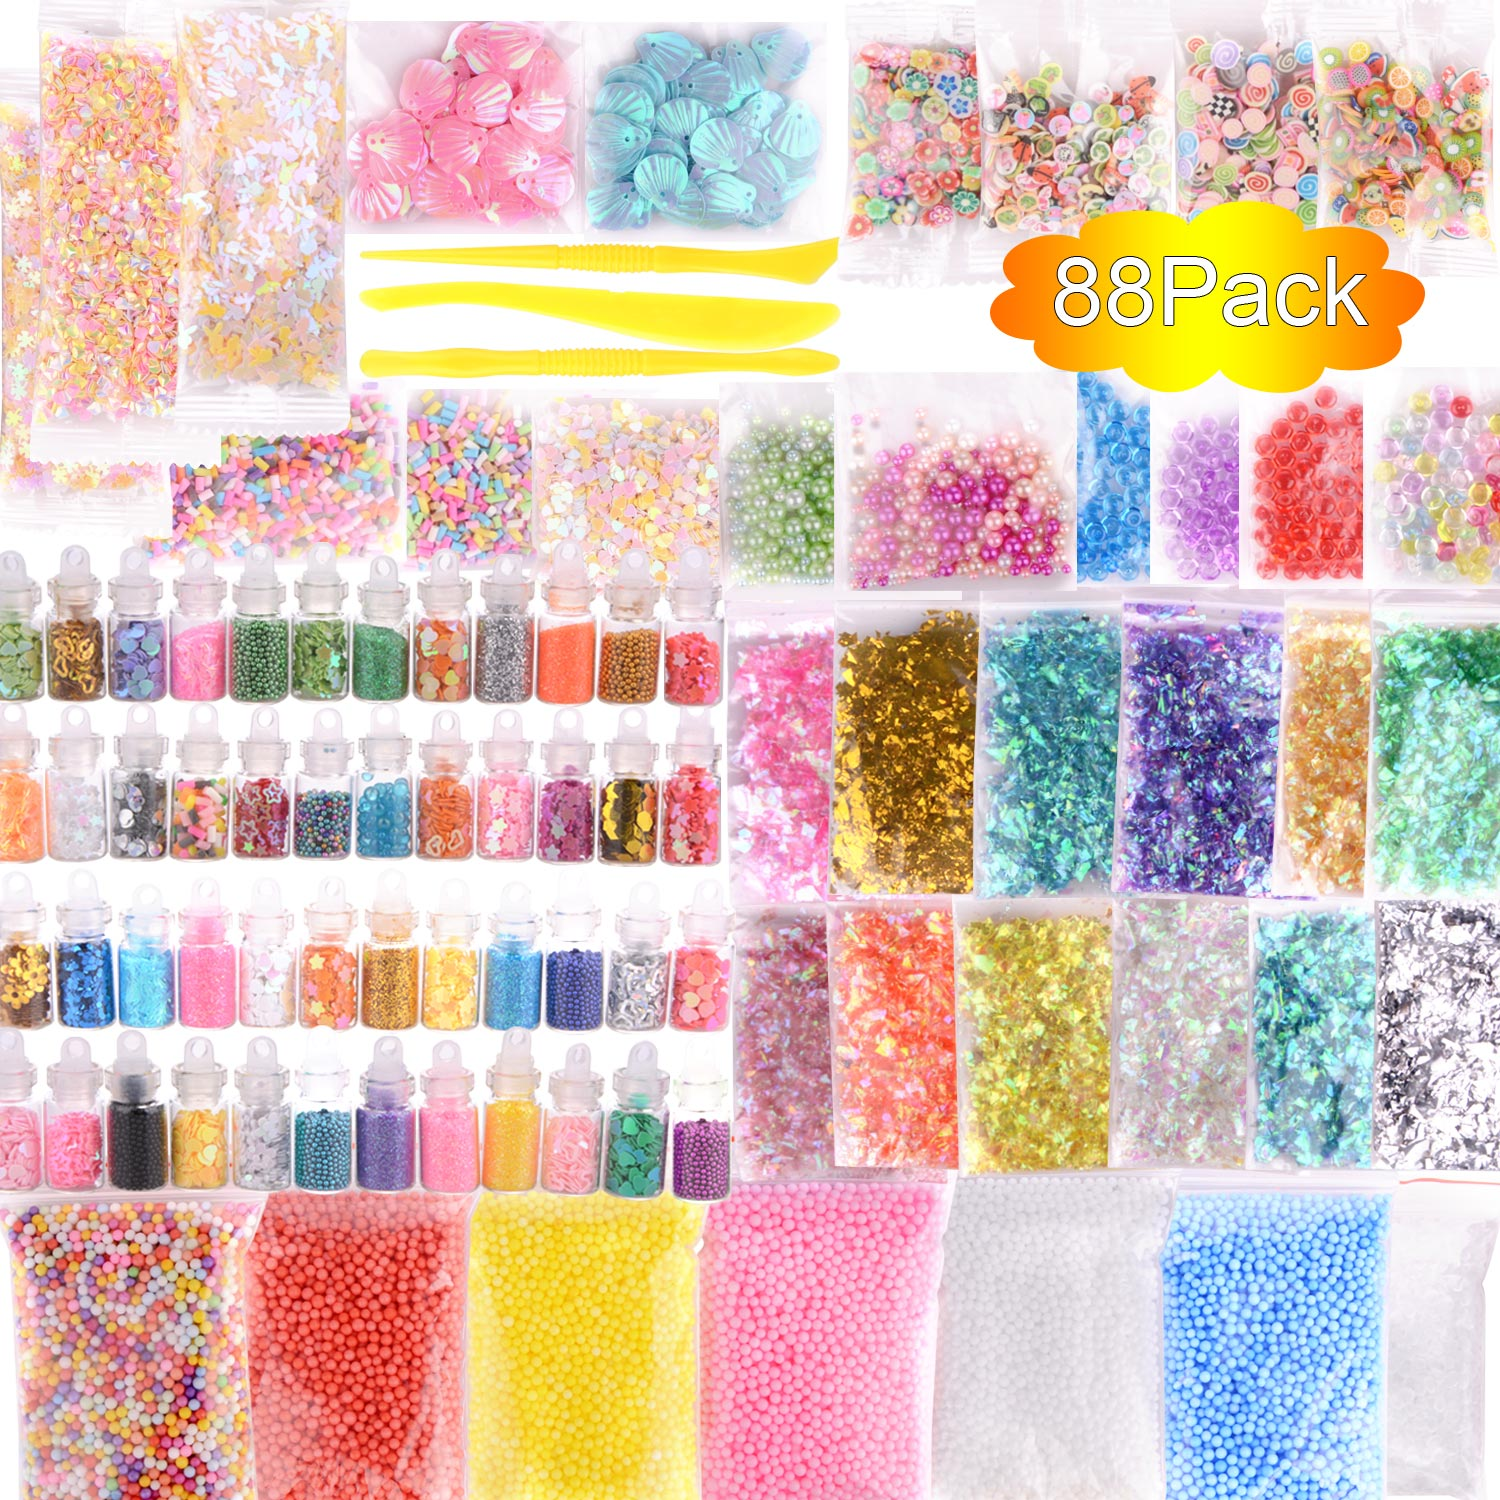 US $7 77 21% OFF|88 Pack Slime Making Kit Styrofoam Foam Balls Beads Charms  Glitter Jars Containers Slime for DIY Craft Homemade Party Supply-in Party